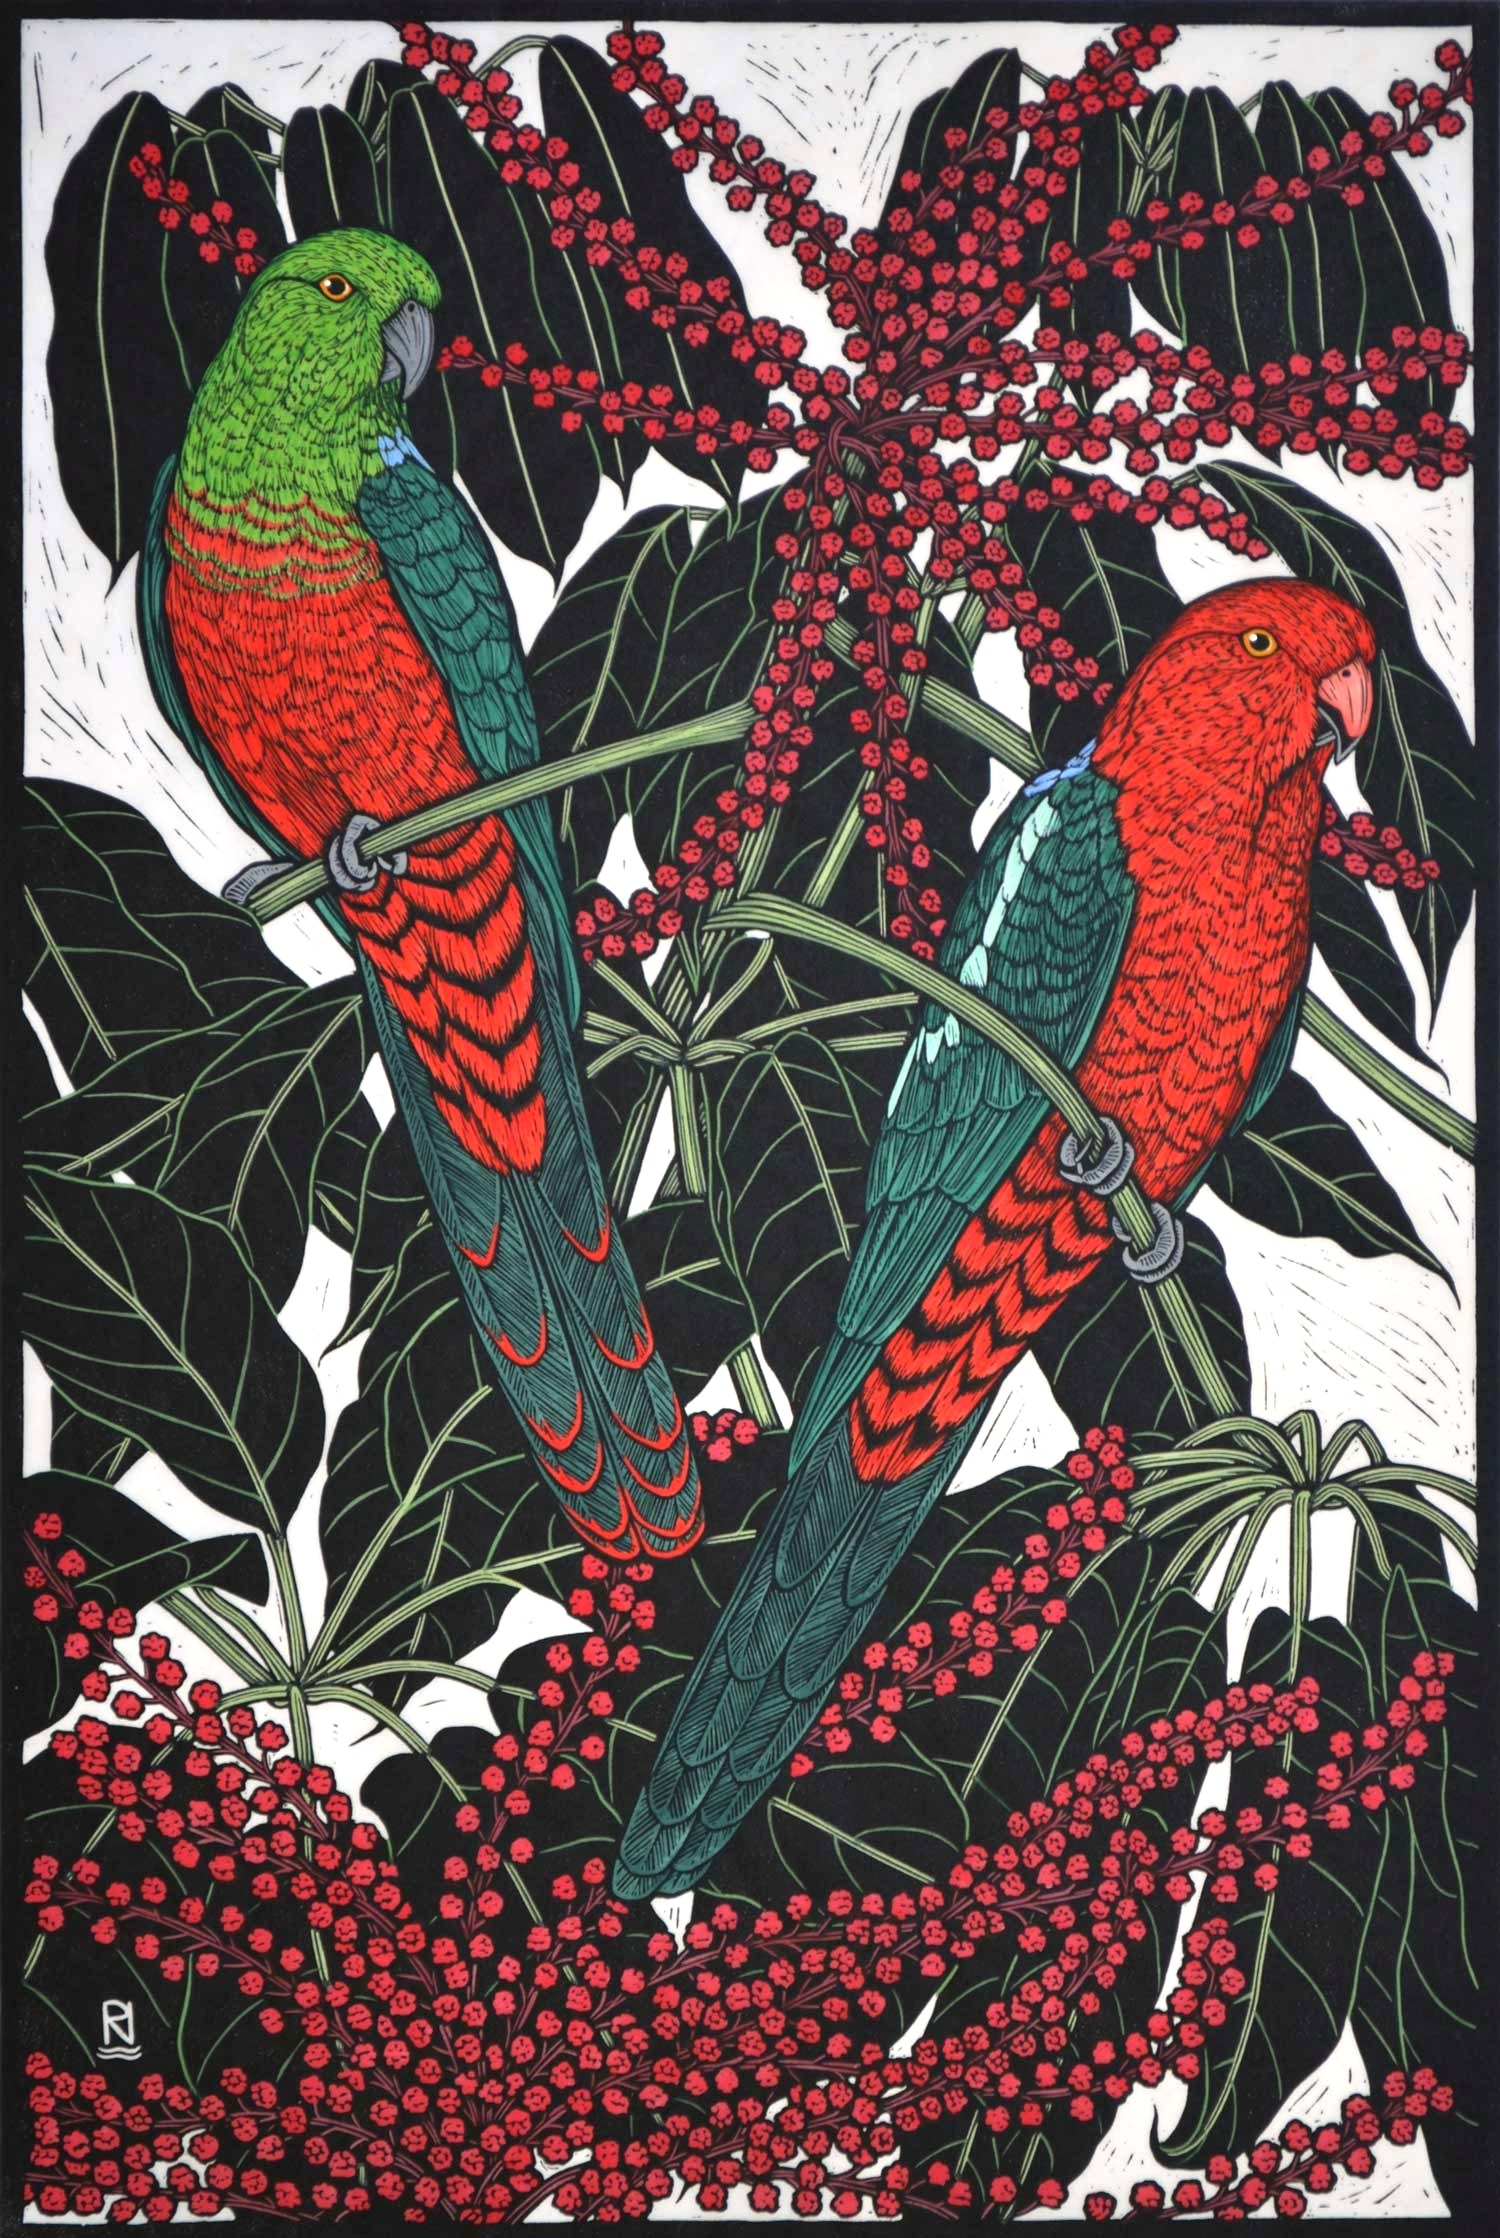 KING PARROT  75 X 50 CM EDITION OF 50  HAND COLOURED LINOCUT ON HANDMADE JAPANESE PAPER  $1,550